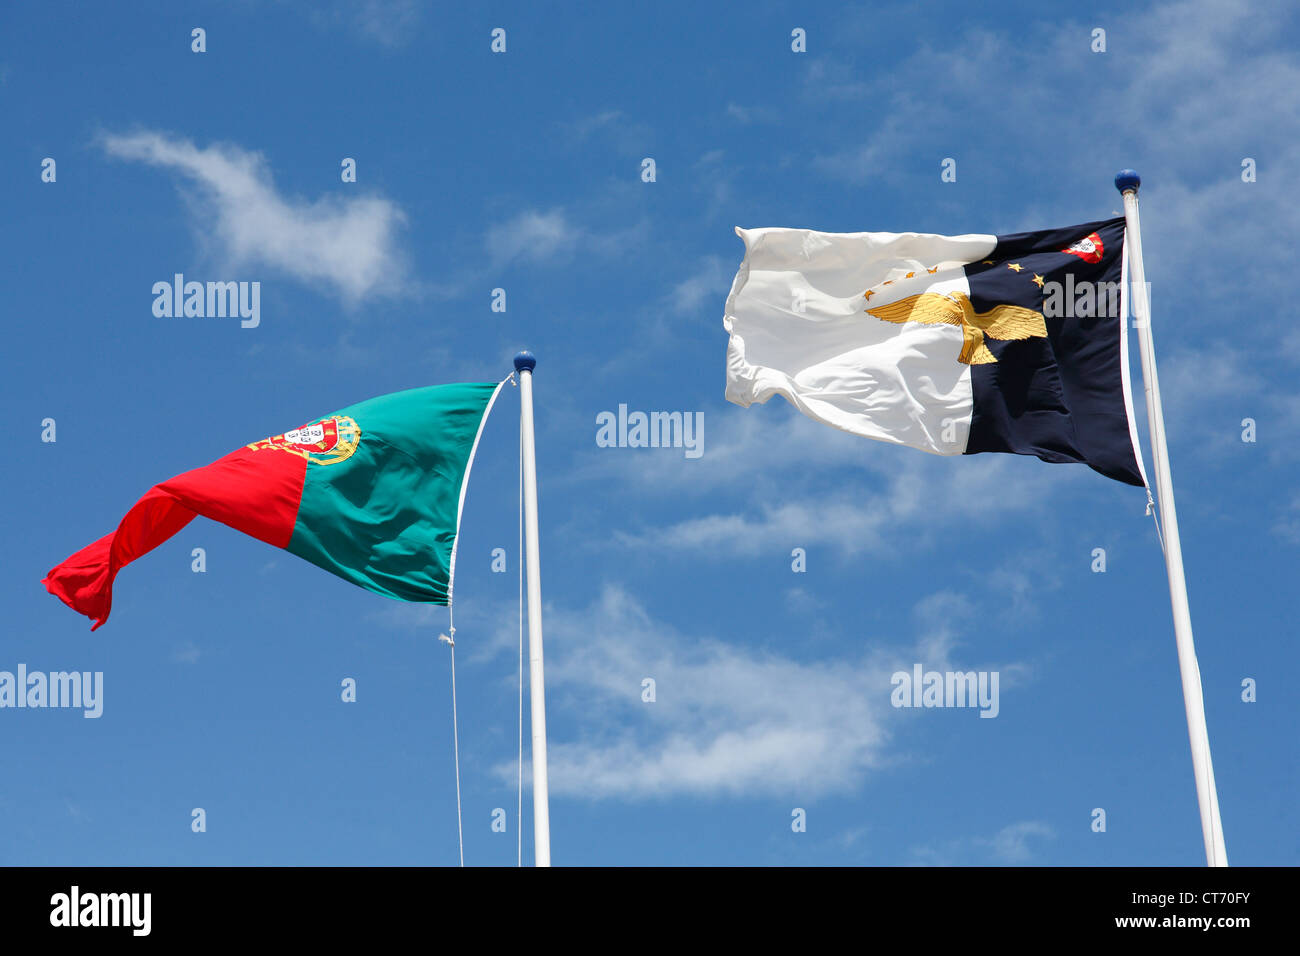 Flags of Portugal and Azores islands - Stock Image